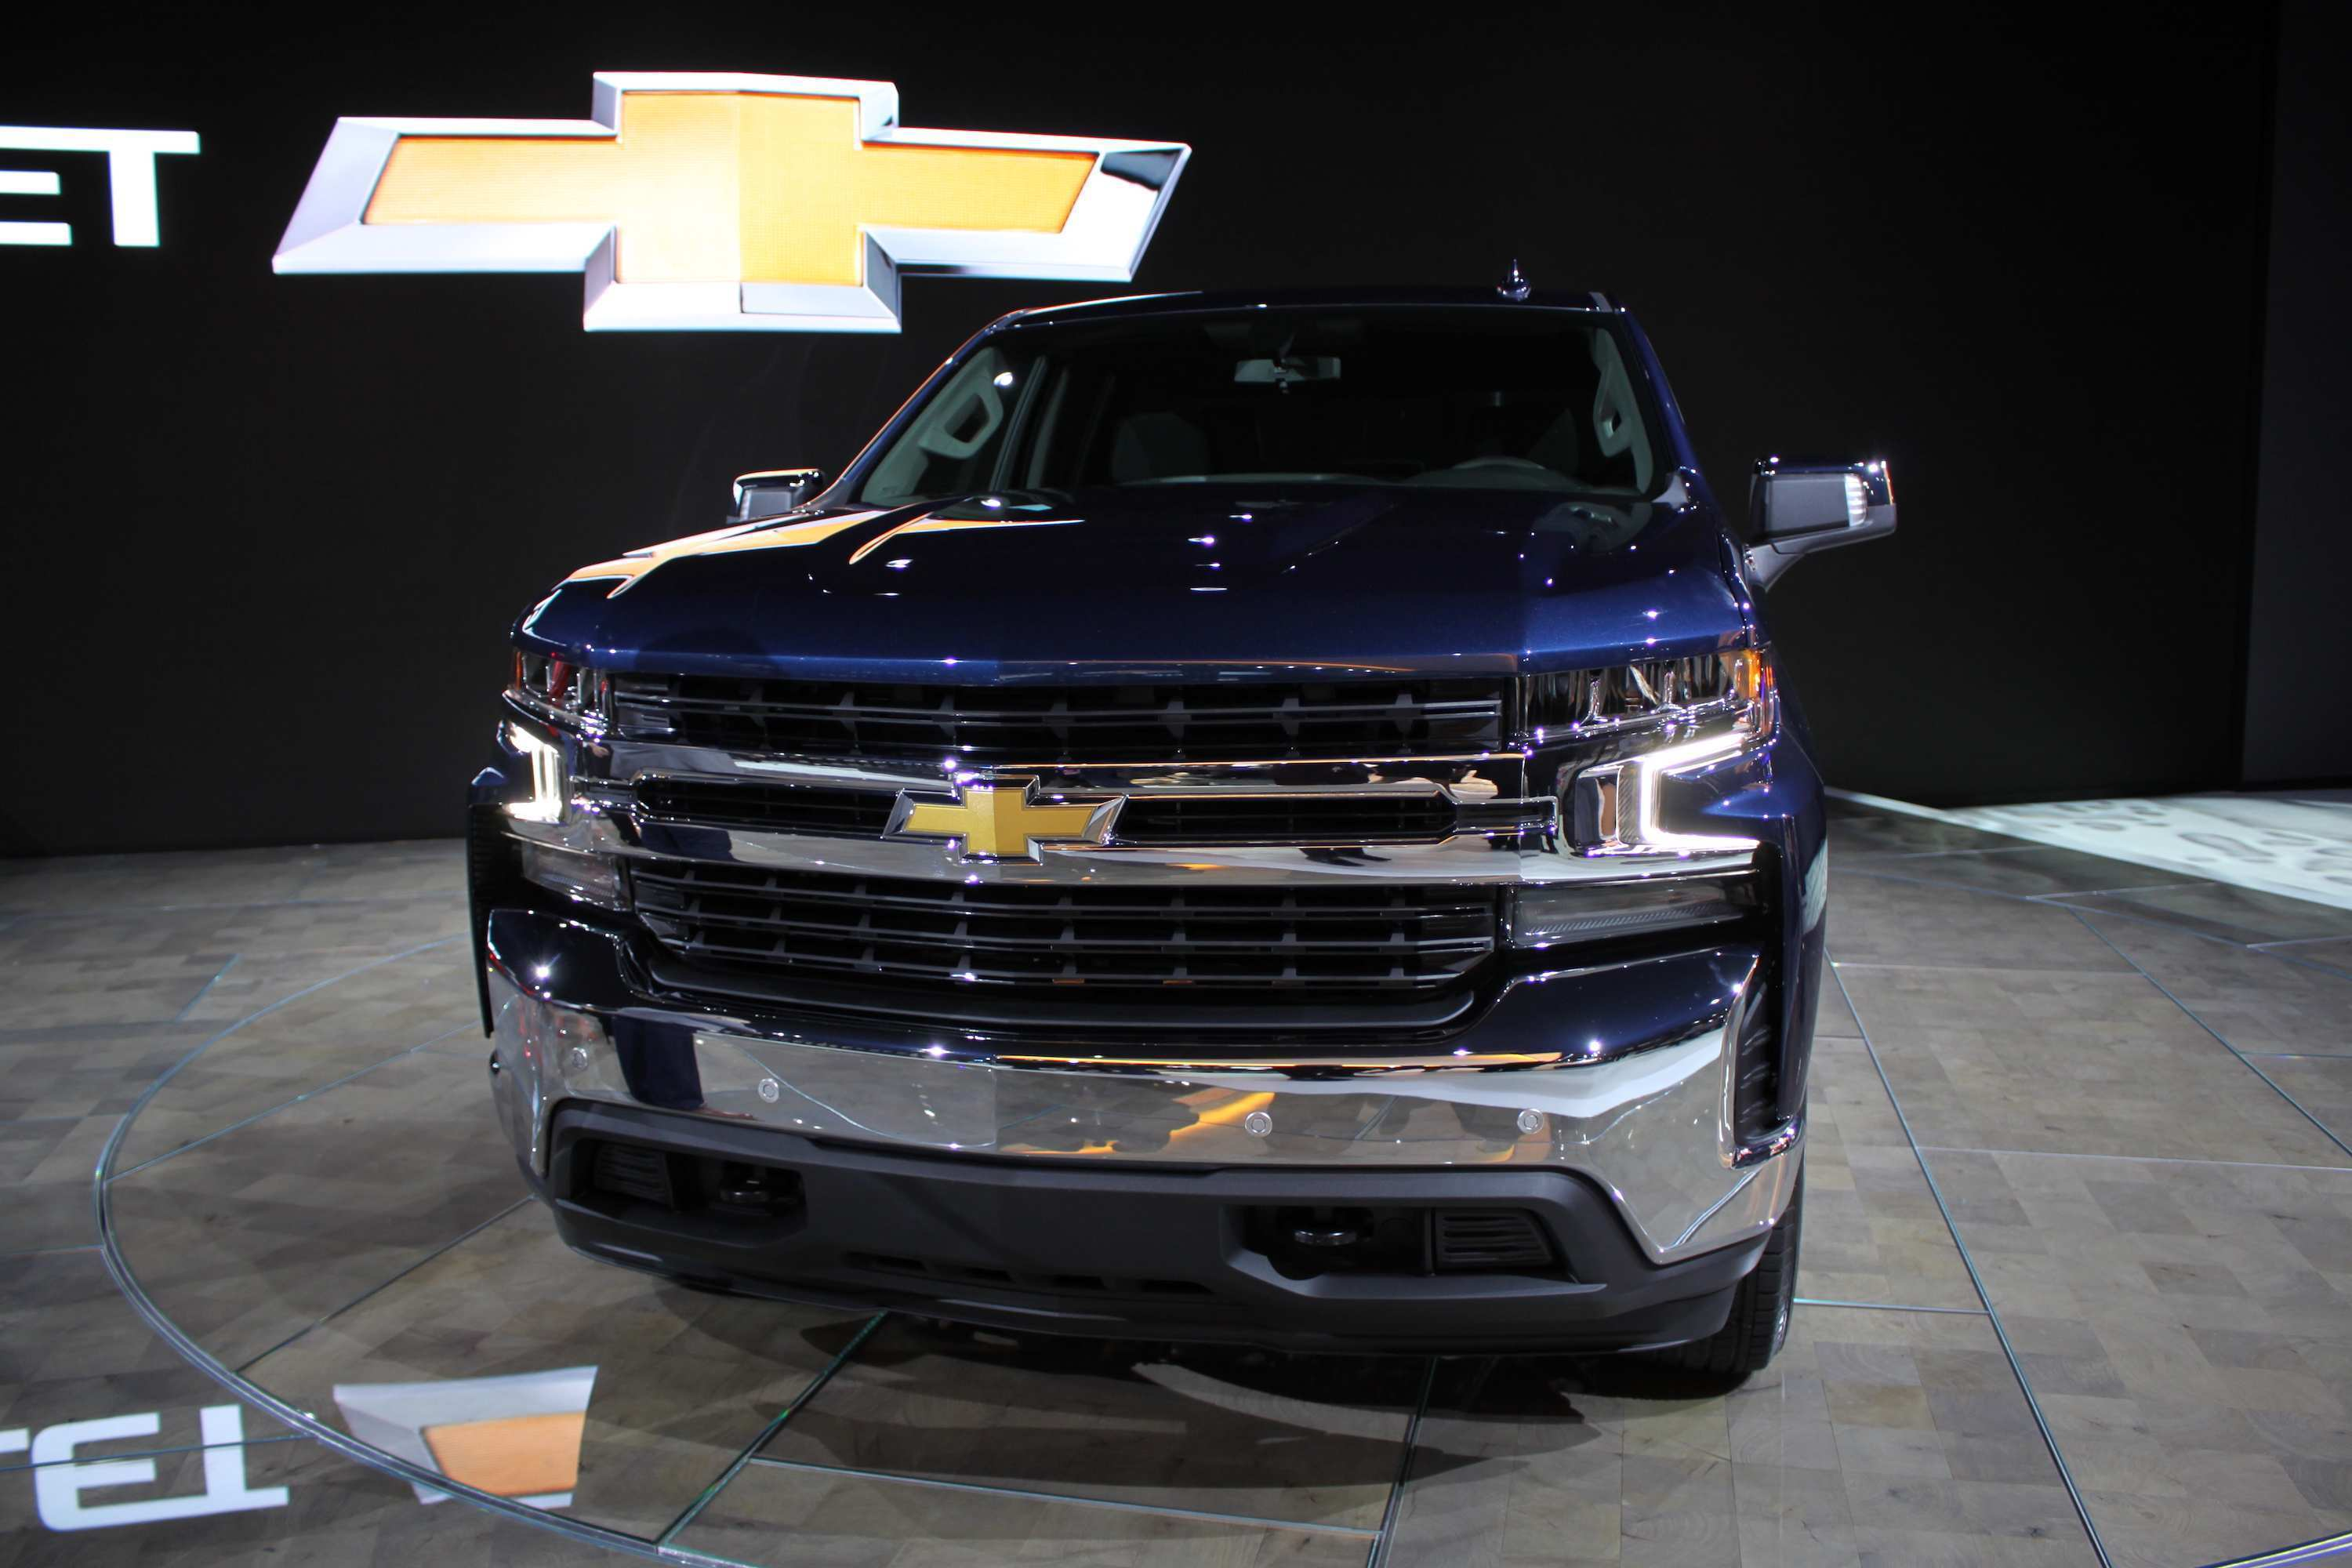 91 Best Review 2019 Chevrolet 3 0 Diesel Photos by 2019 Chevrolet 3 0 Diesel